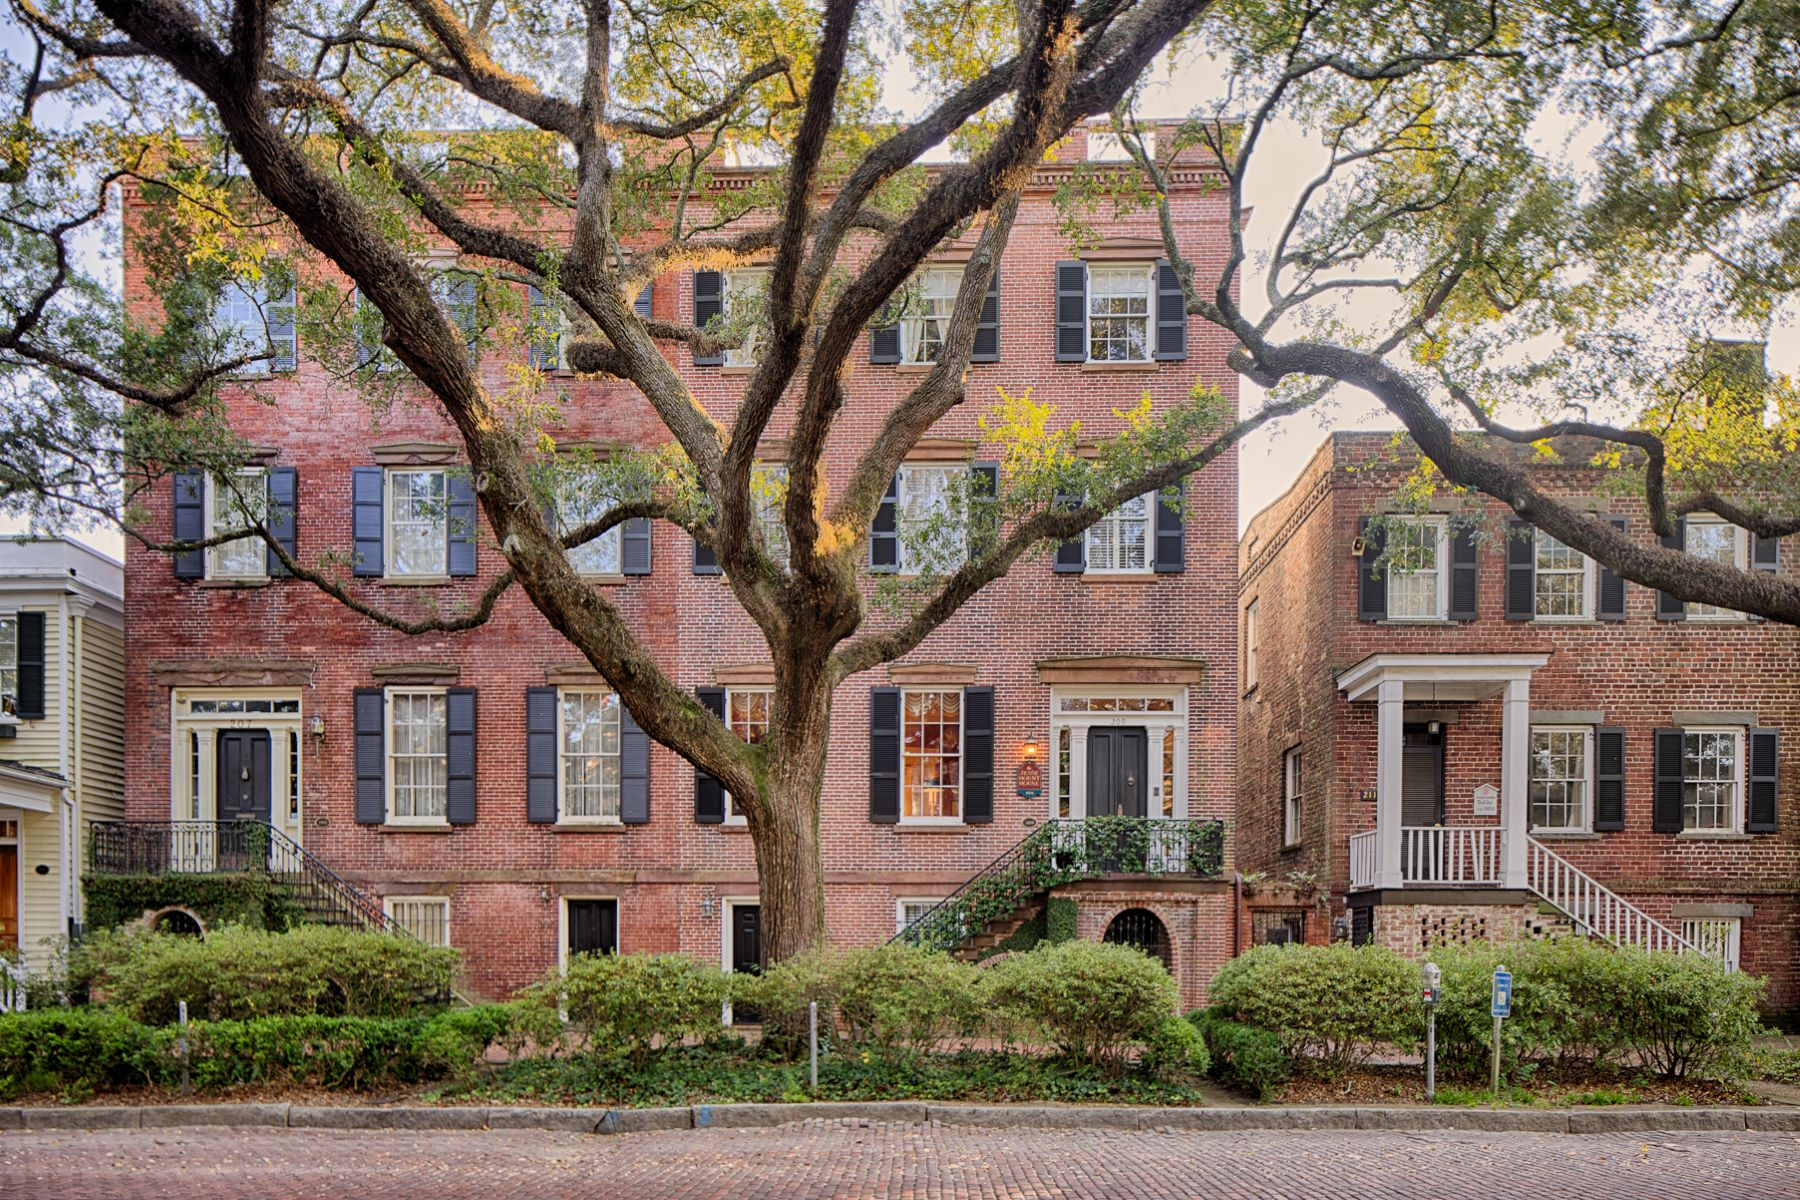 townhouses للـ Sale في 209 W Jones St Savannah, Georgia 31401 United States